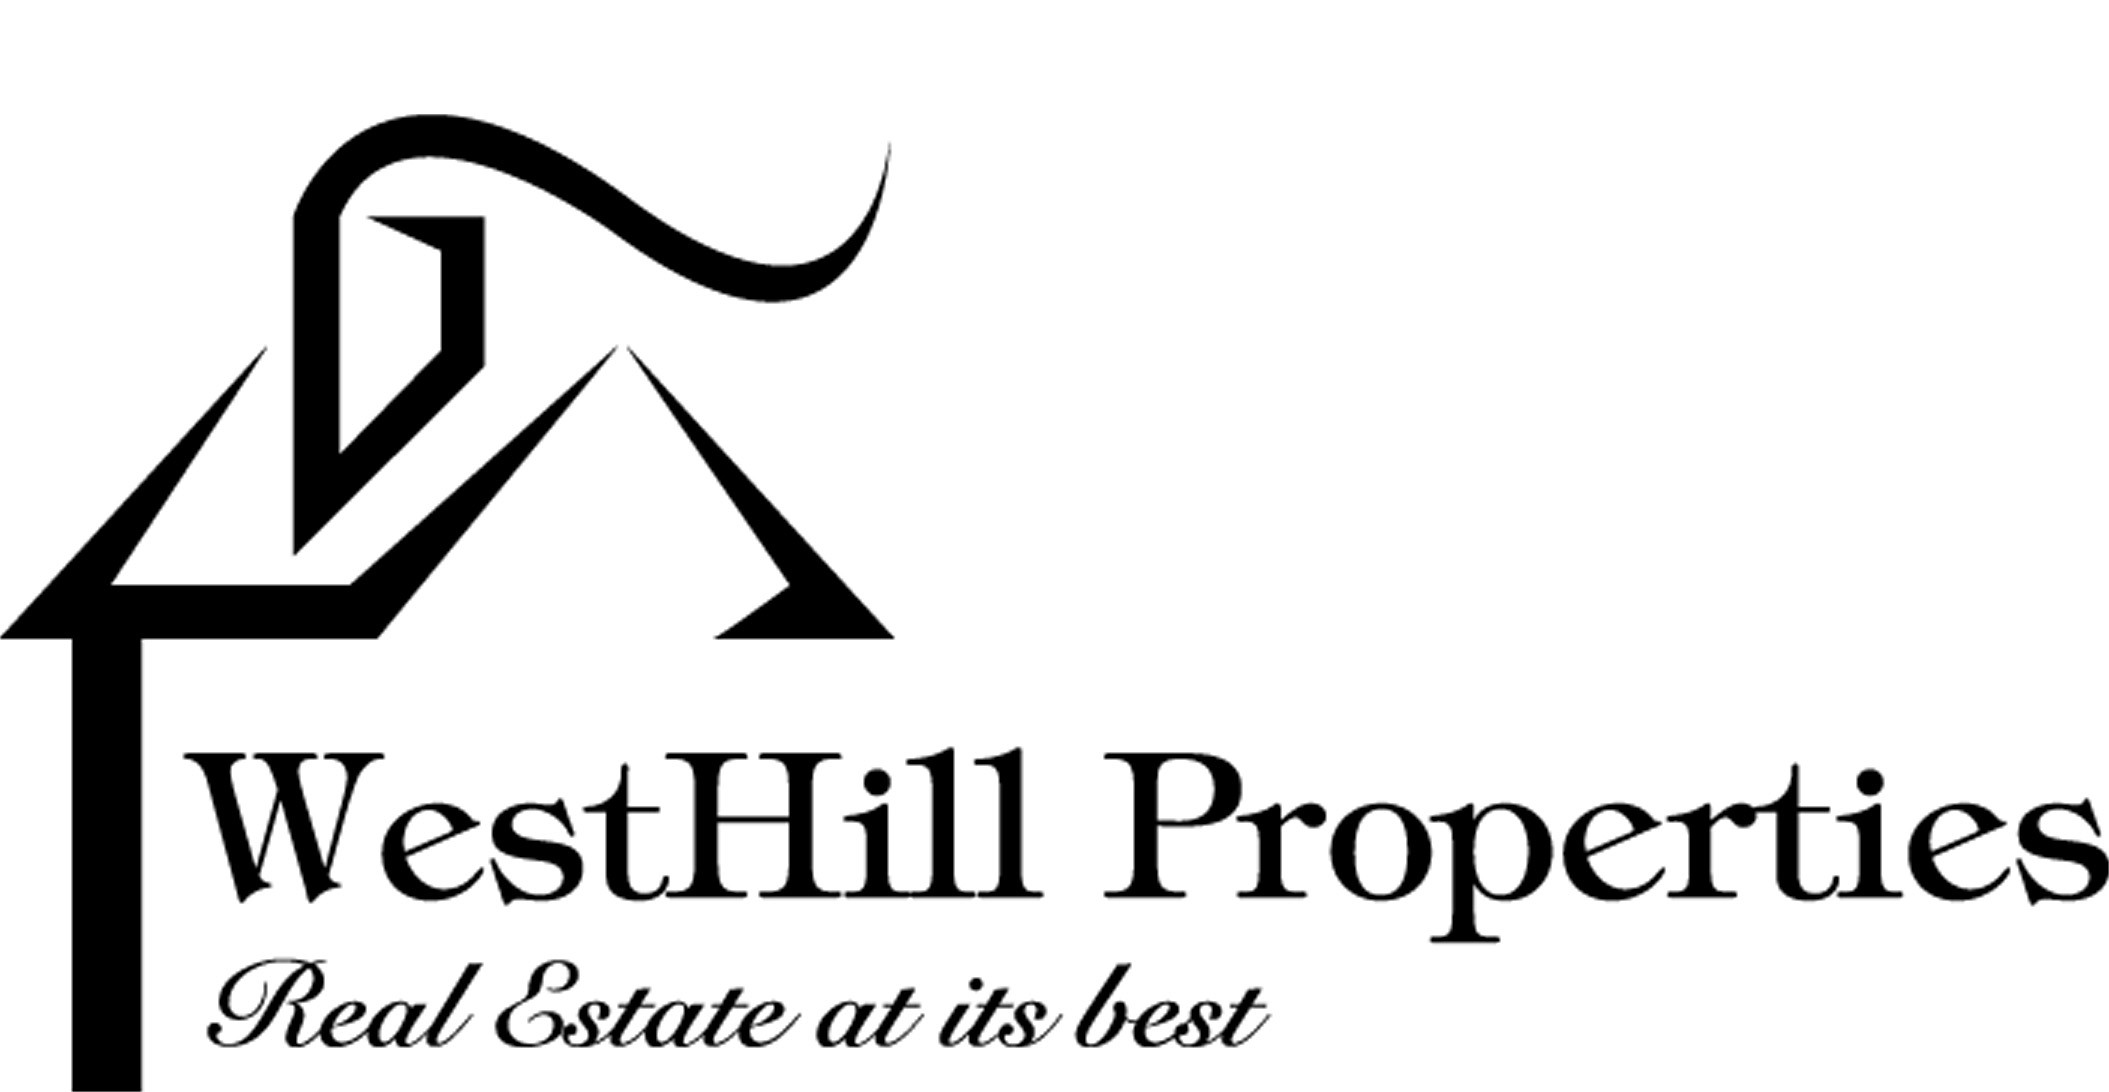 WestHill Properties